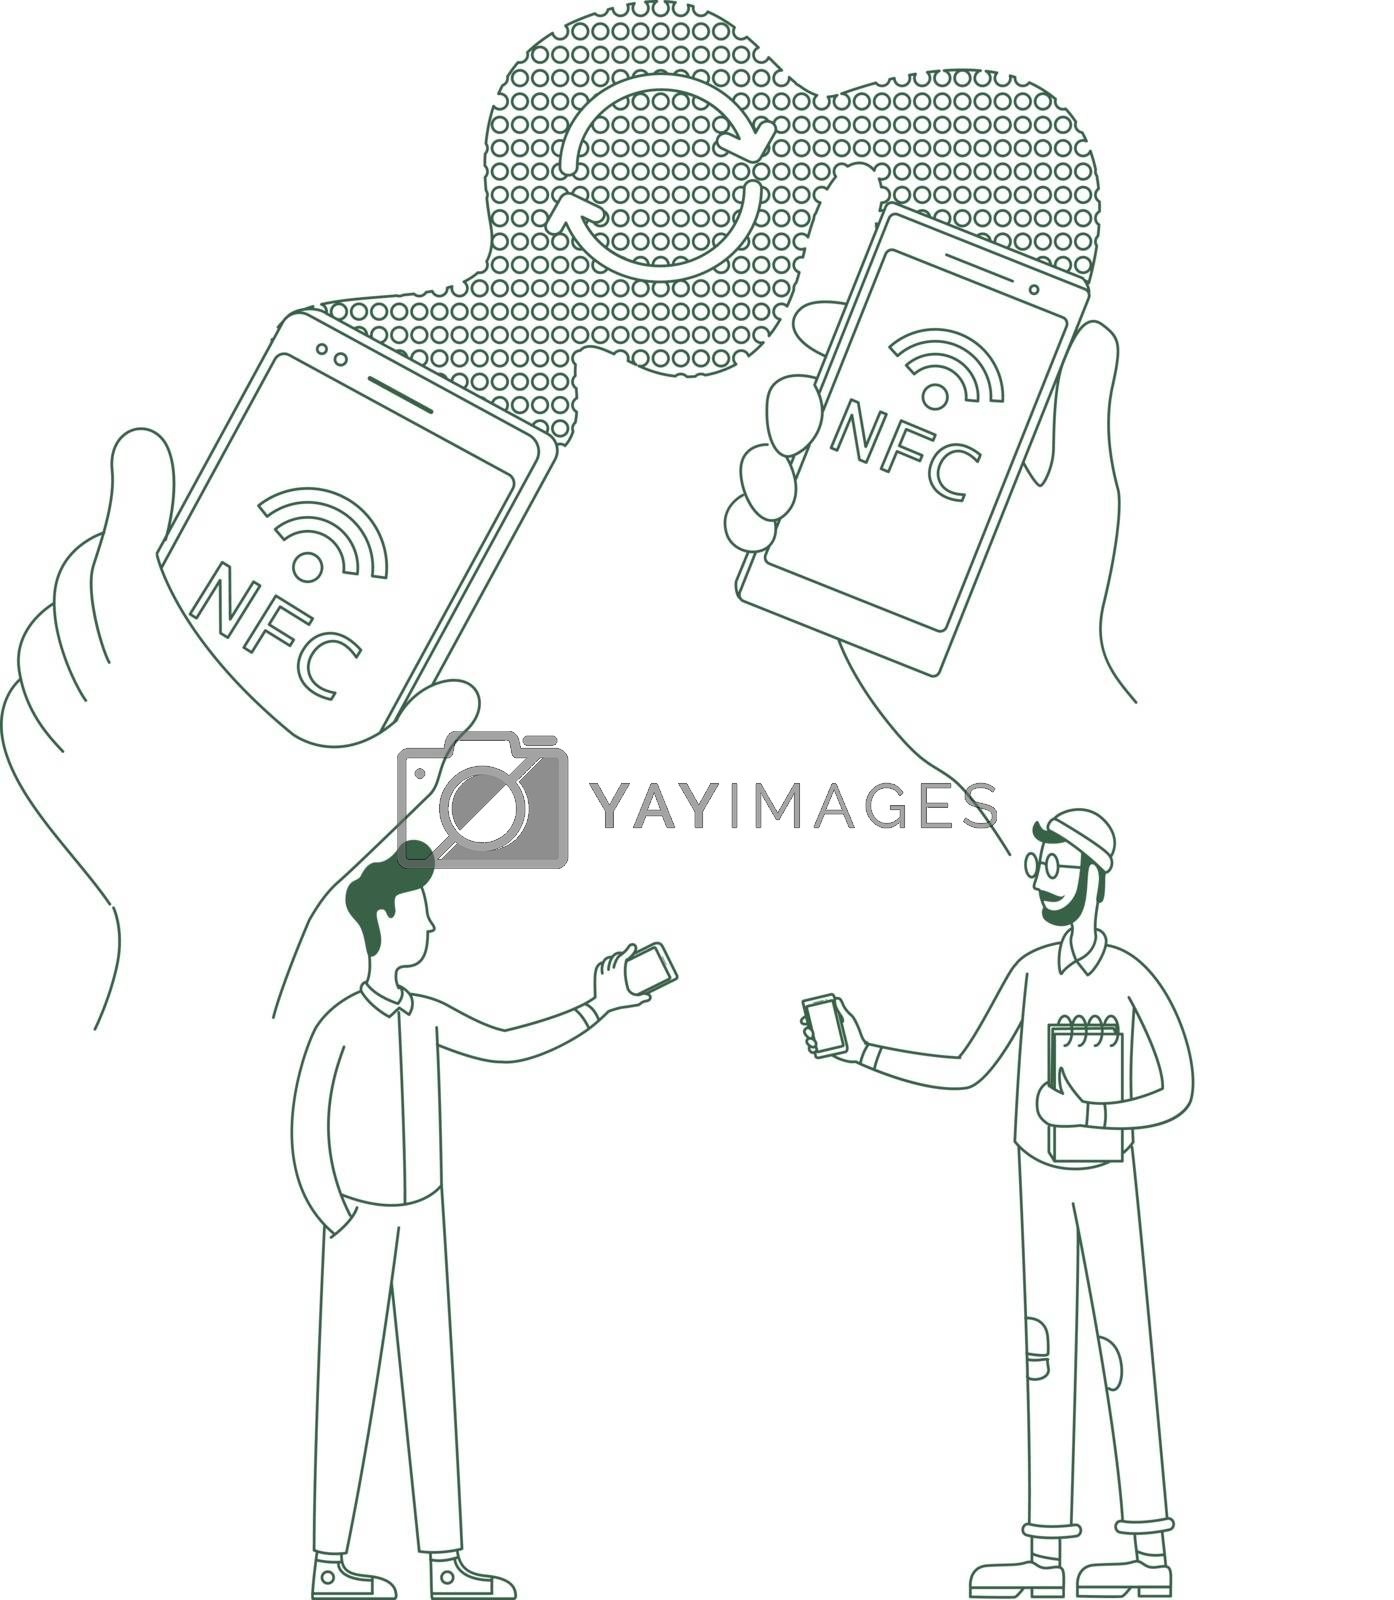 Info exchange, file sending thin line concept vector illustration. People with cellphones 2D cartoon character for web design. NFC, data transfer, wireless connection creative idea